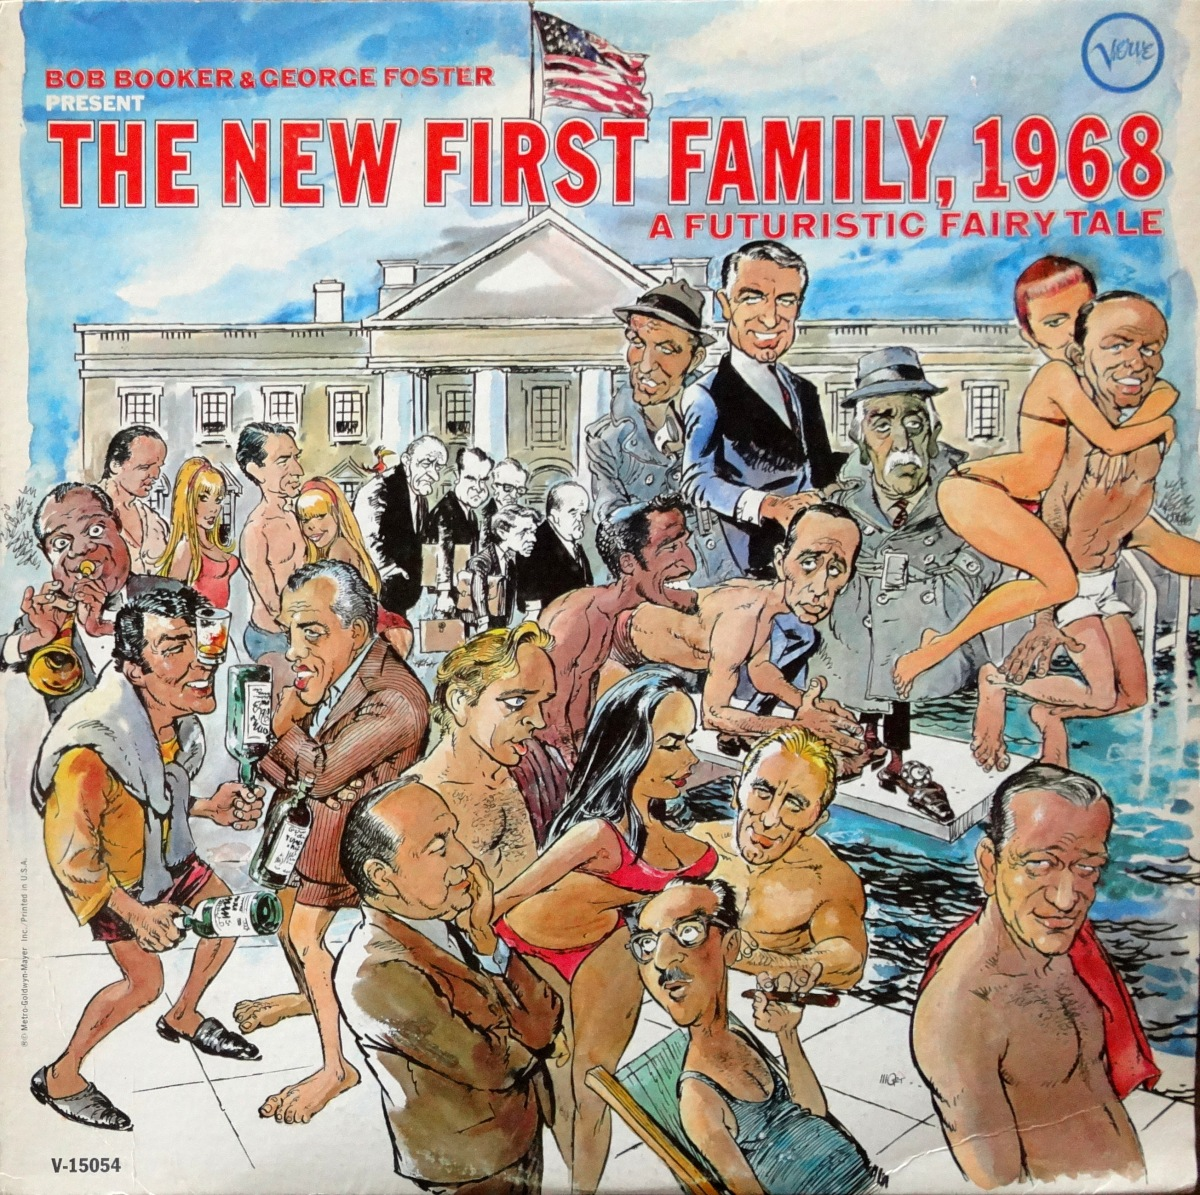 From the Stacks: The New First Family, 1968: A Futuristic Fairy Tale